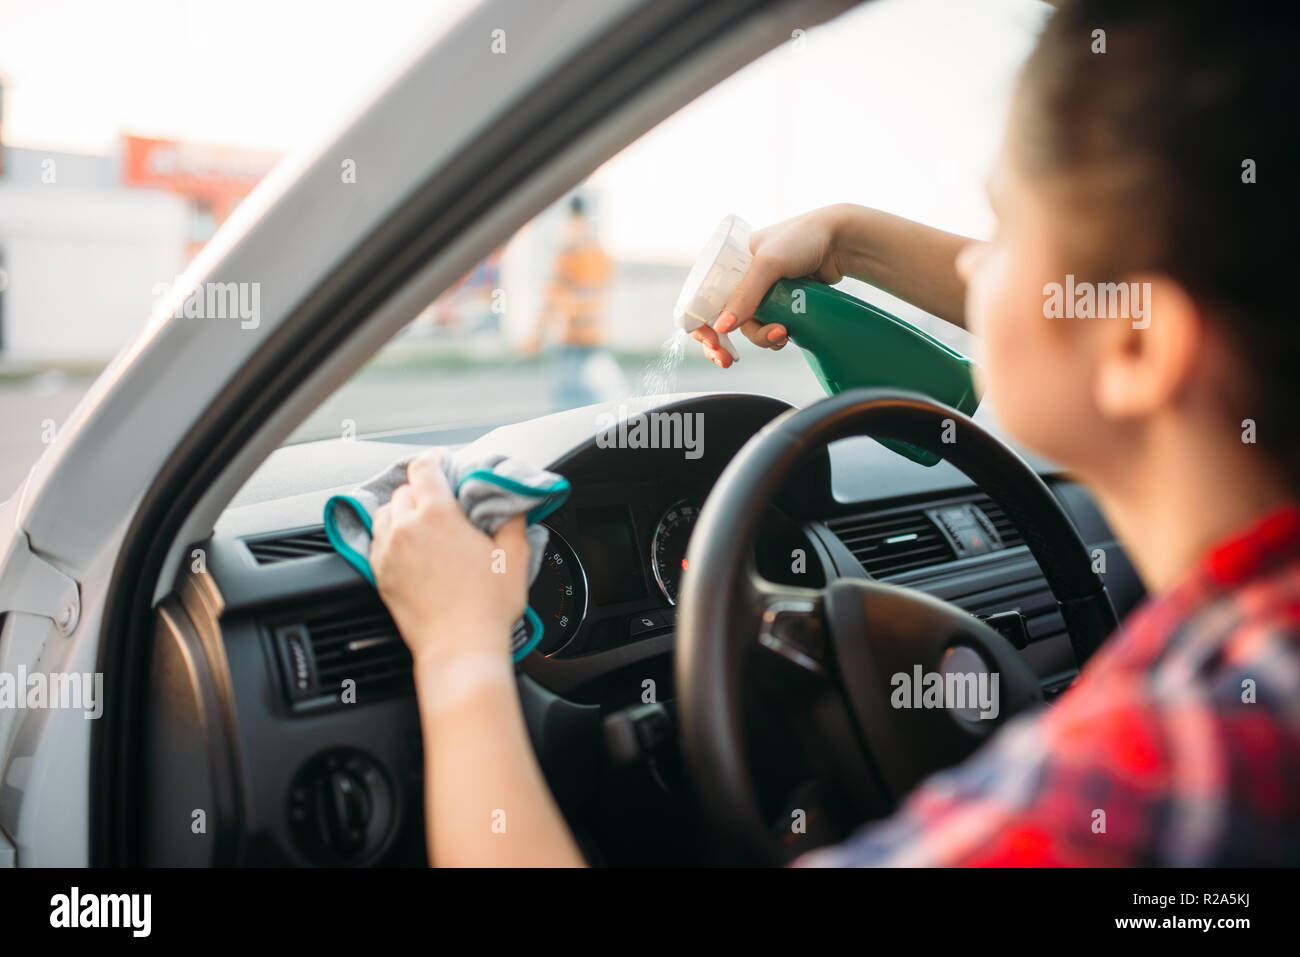 Female Person Polishes The Dashboard Of The Car Polishing Process